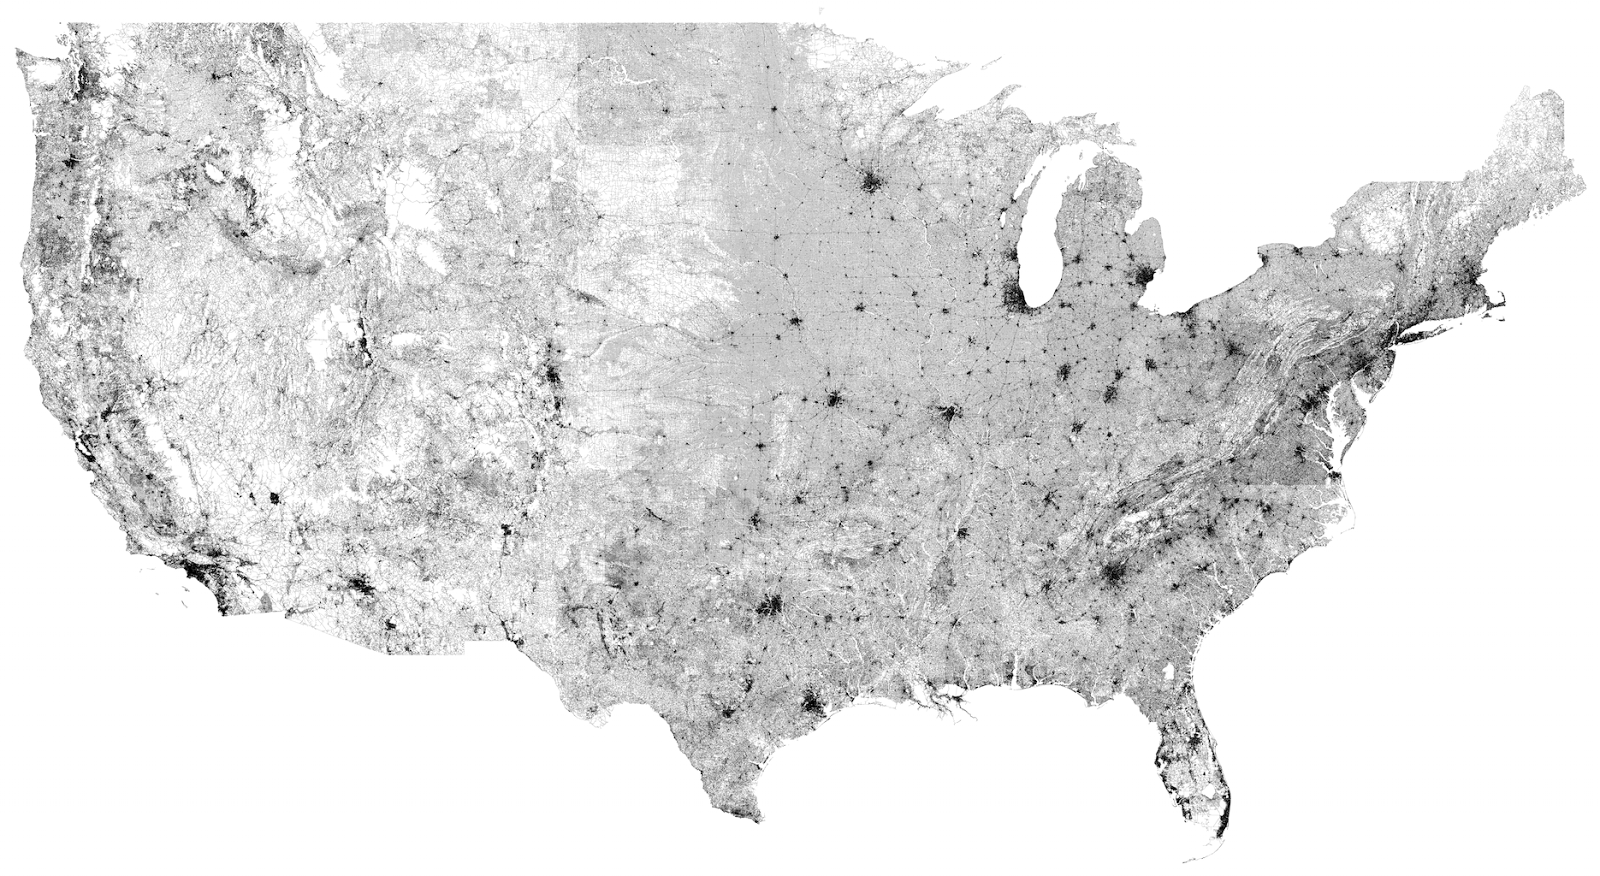 Every single road in the U.S.